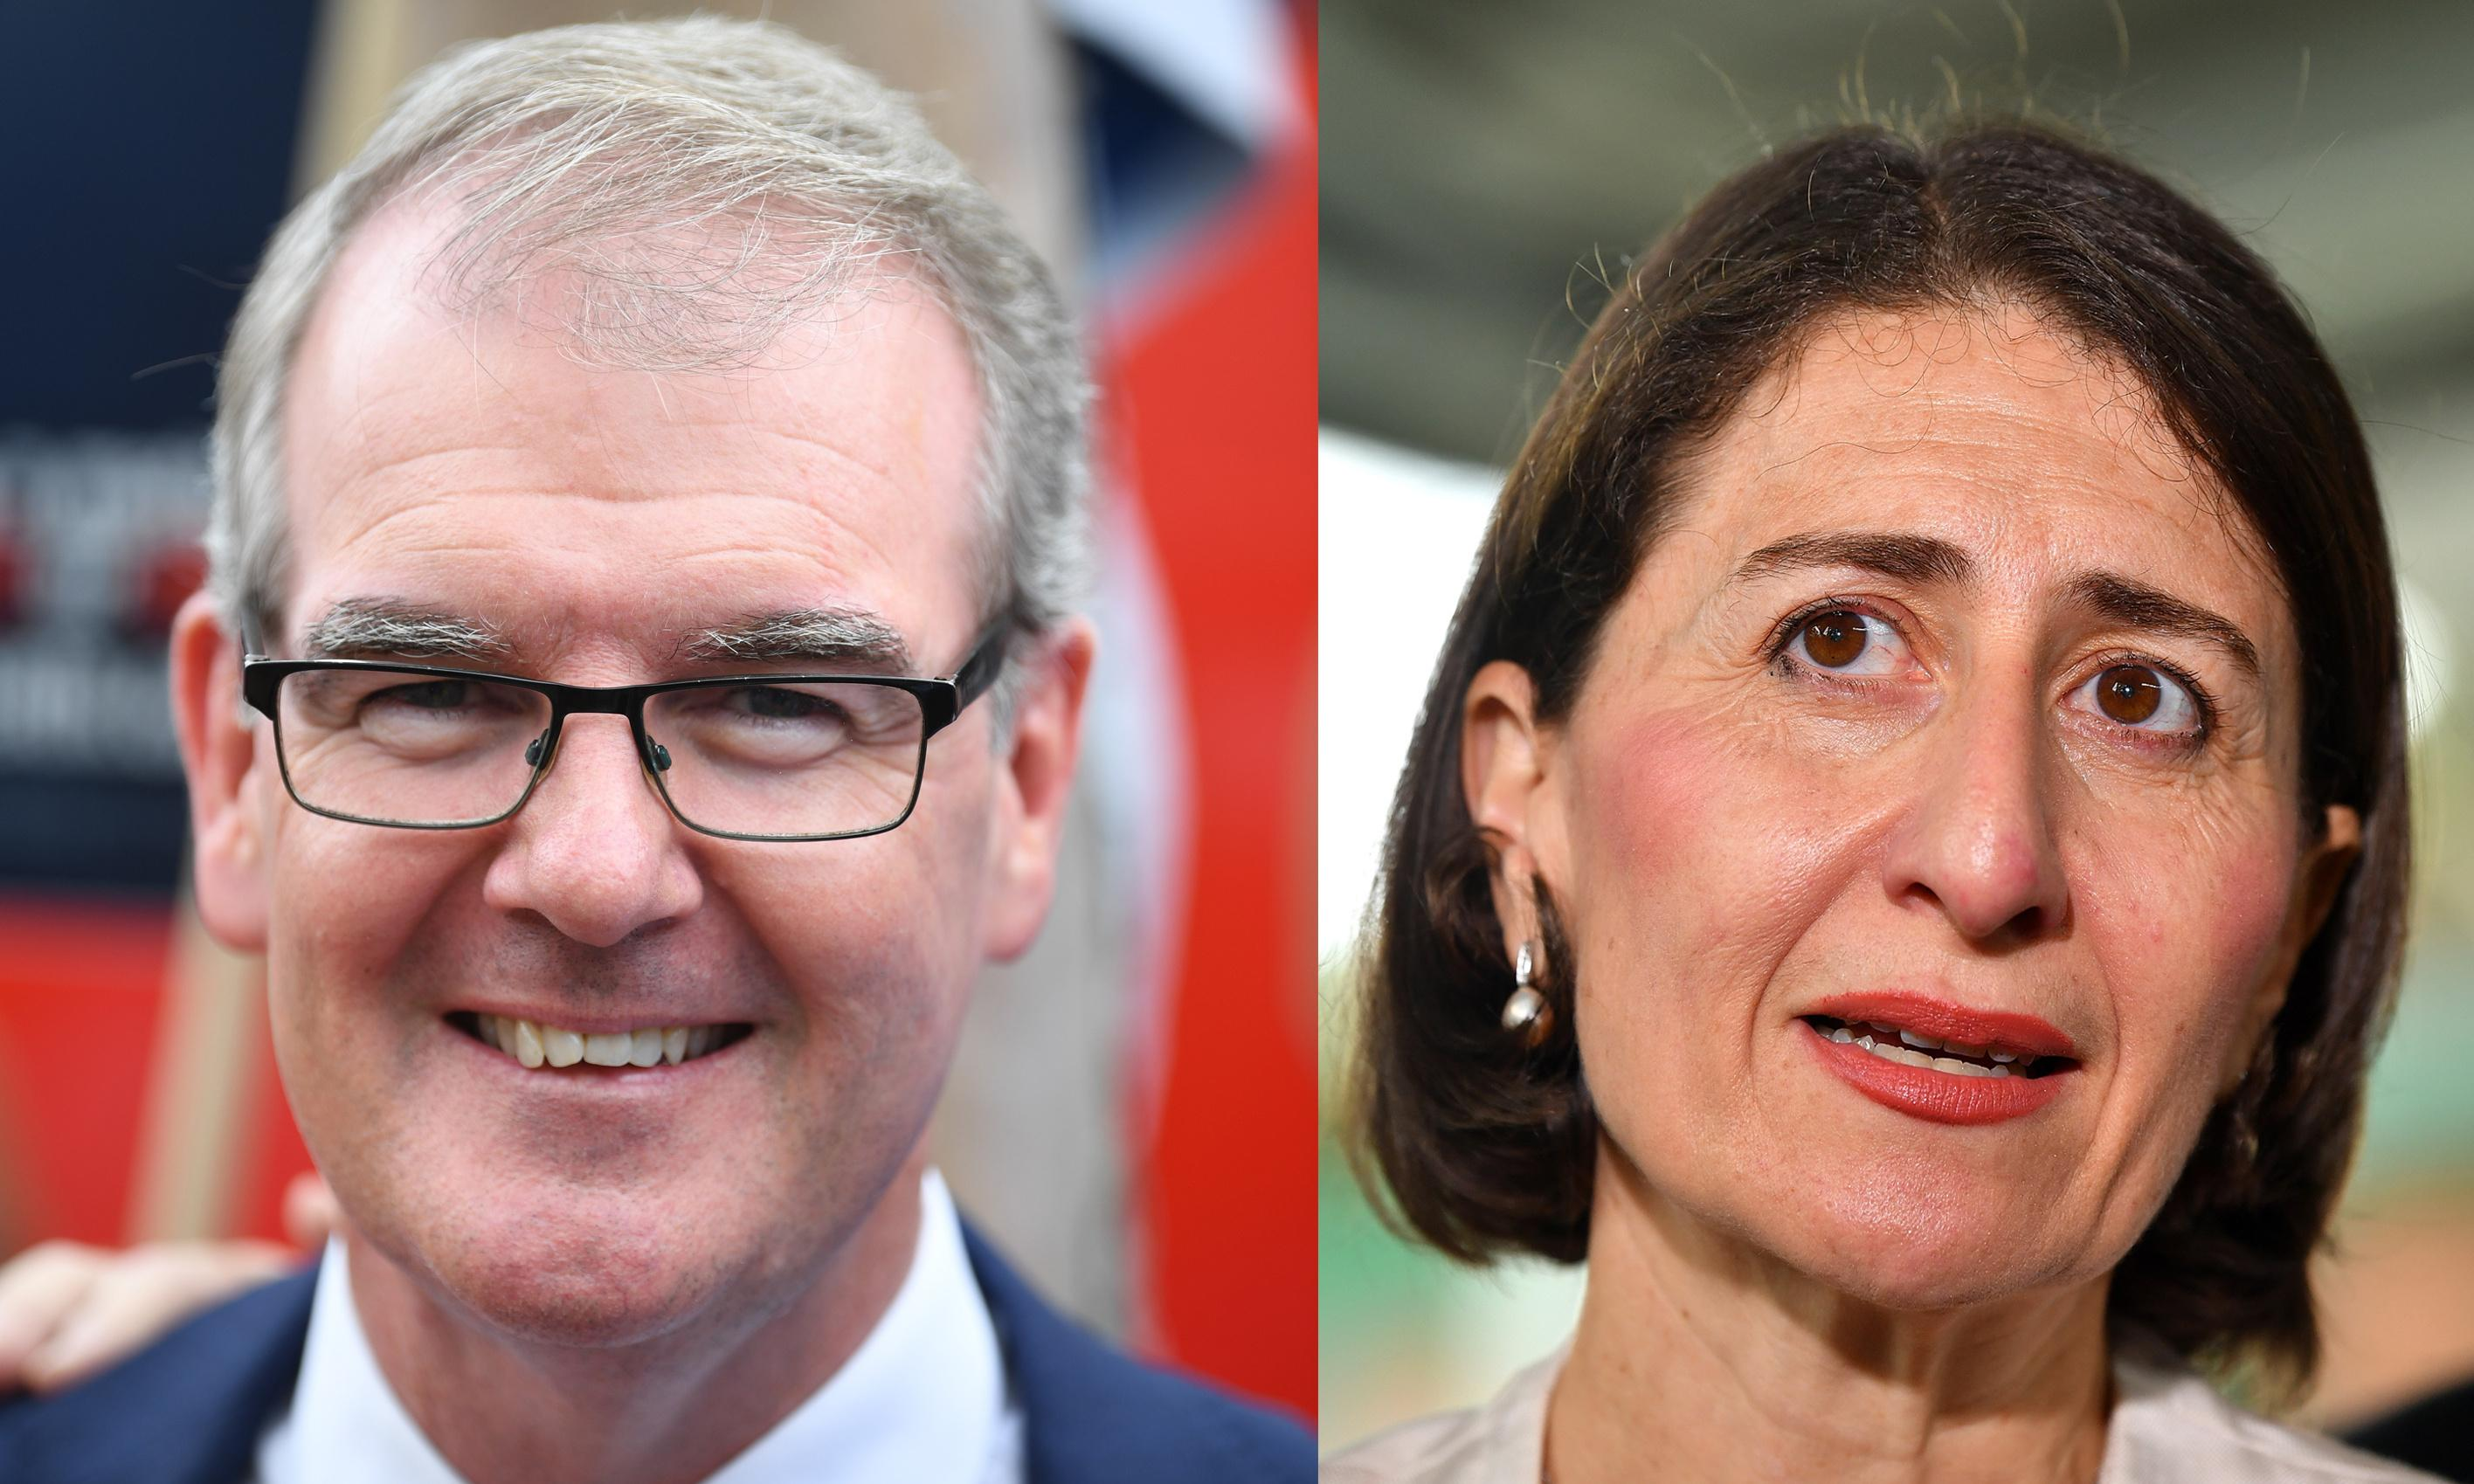 NSW election: after bitter campaign, state could be headed for minority government